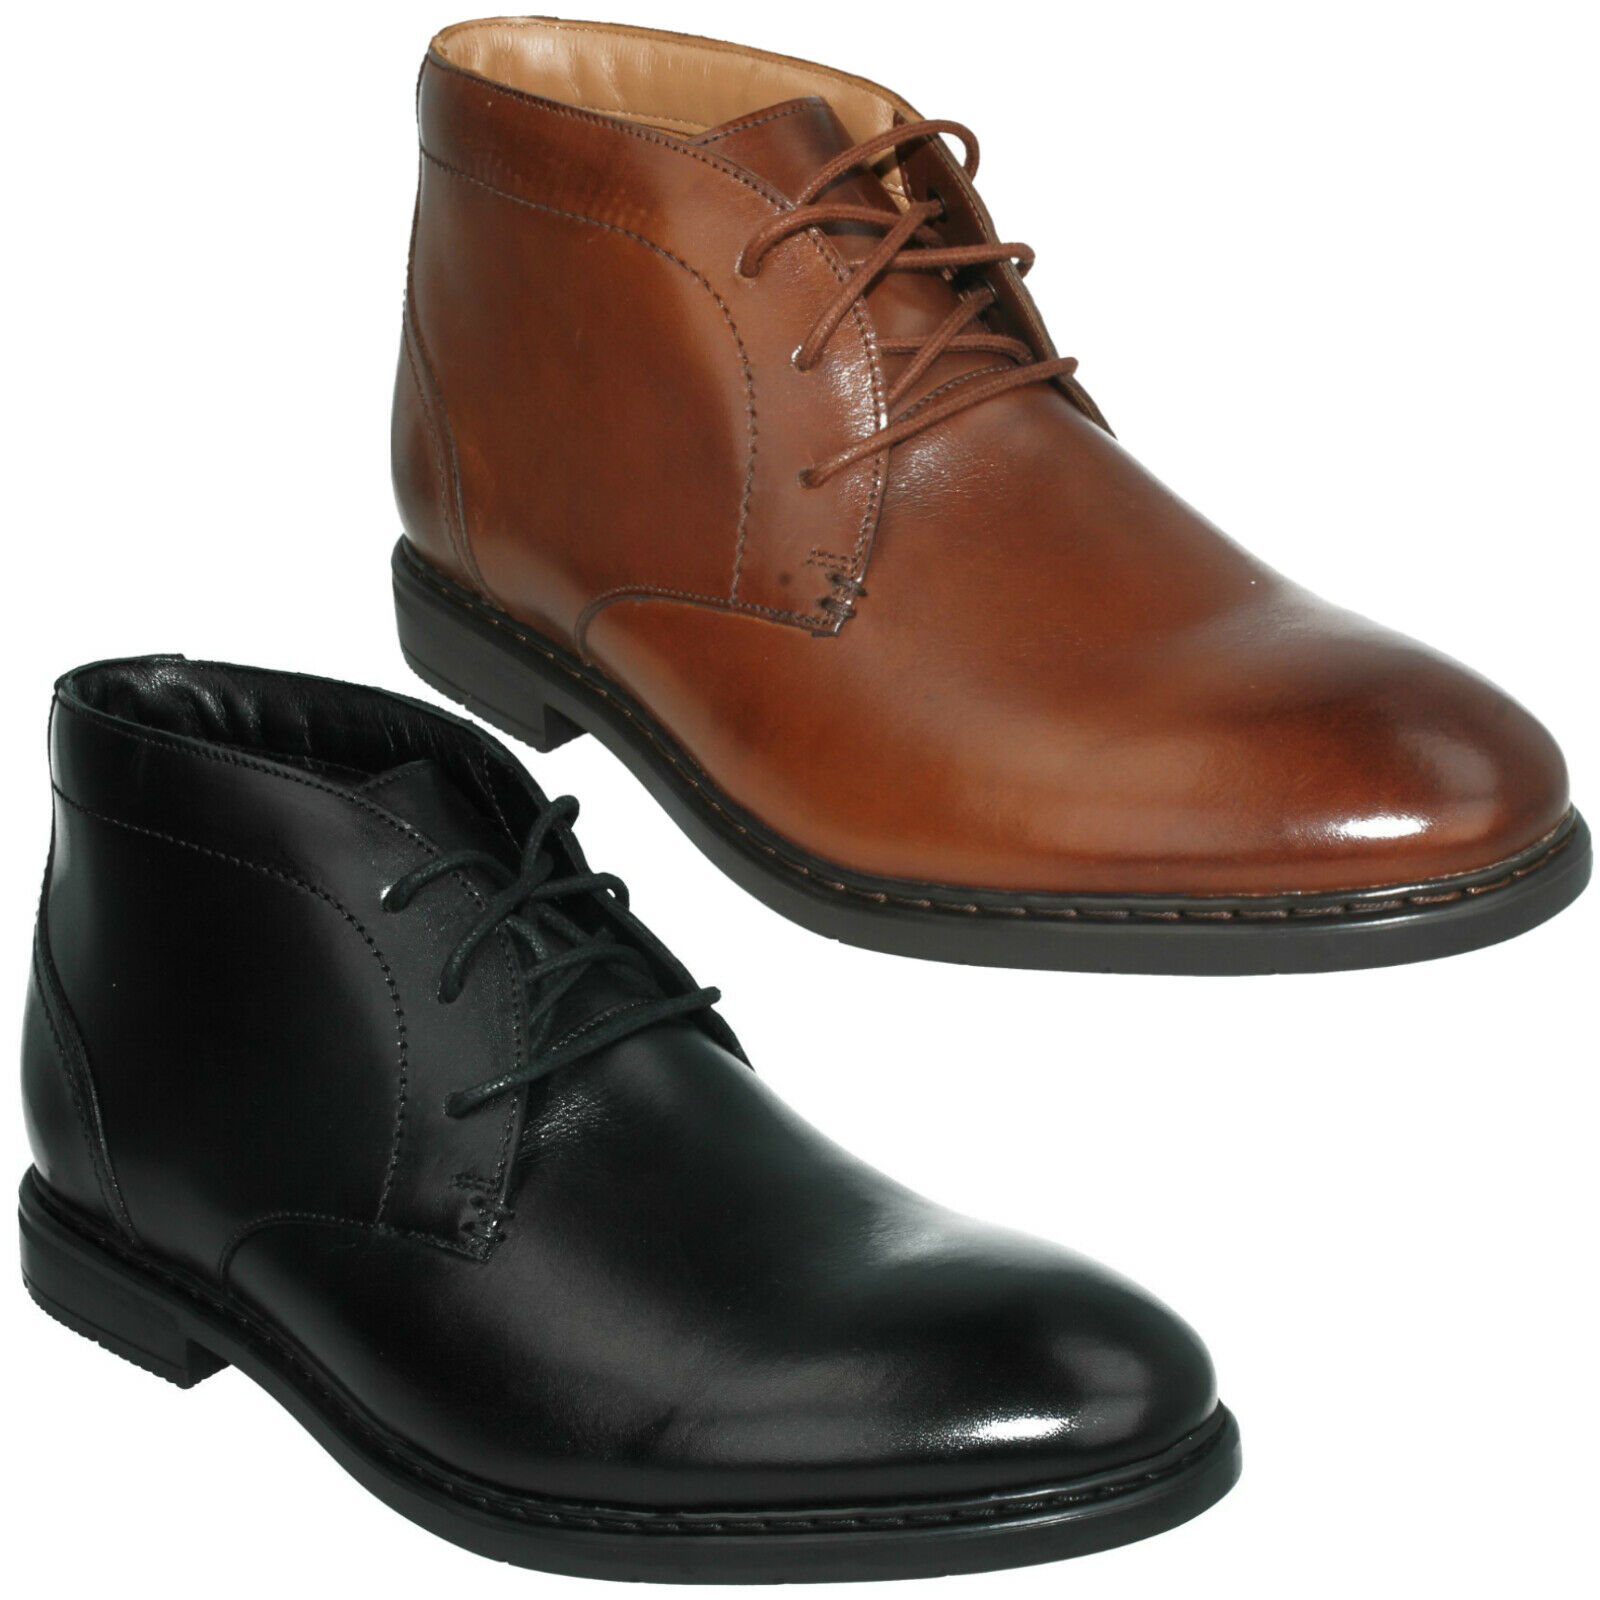 MENS CLARKS BANBURY MID LACE UP SMART CASUAL DESERT ANKLE BOOTS FORMAL SIZE